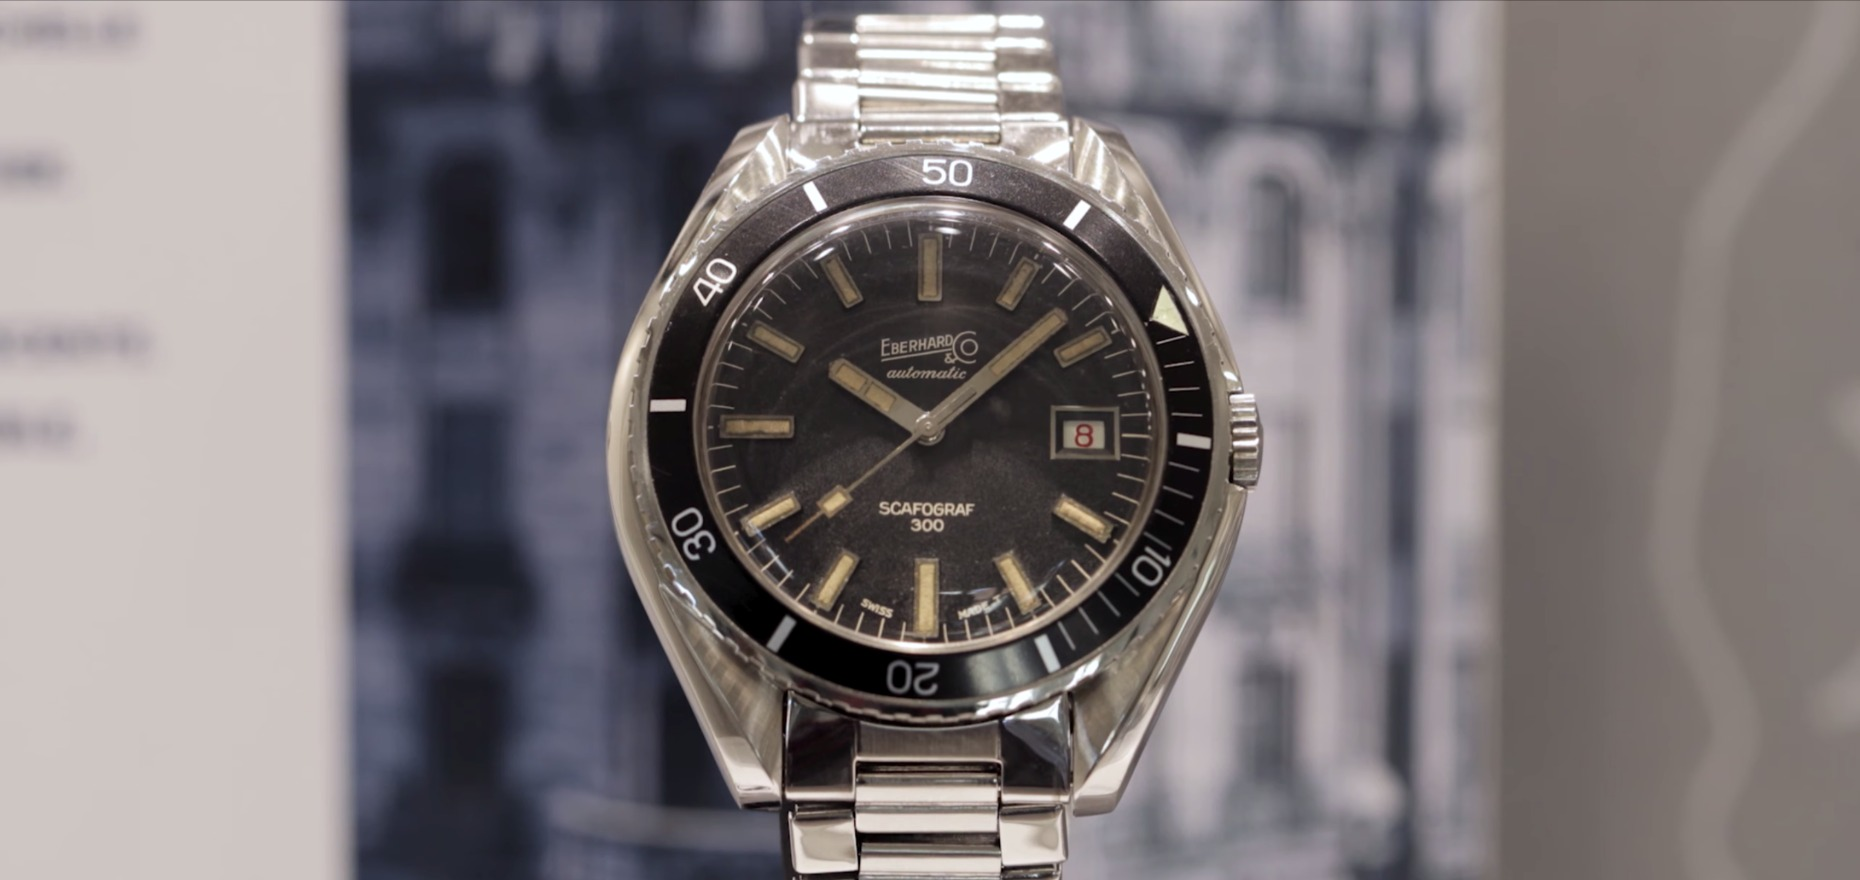 Diving watches from Eberhard & Co.: Dedicated to Tradition